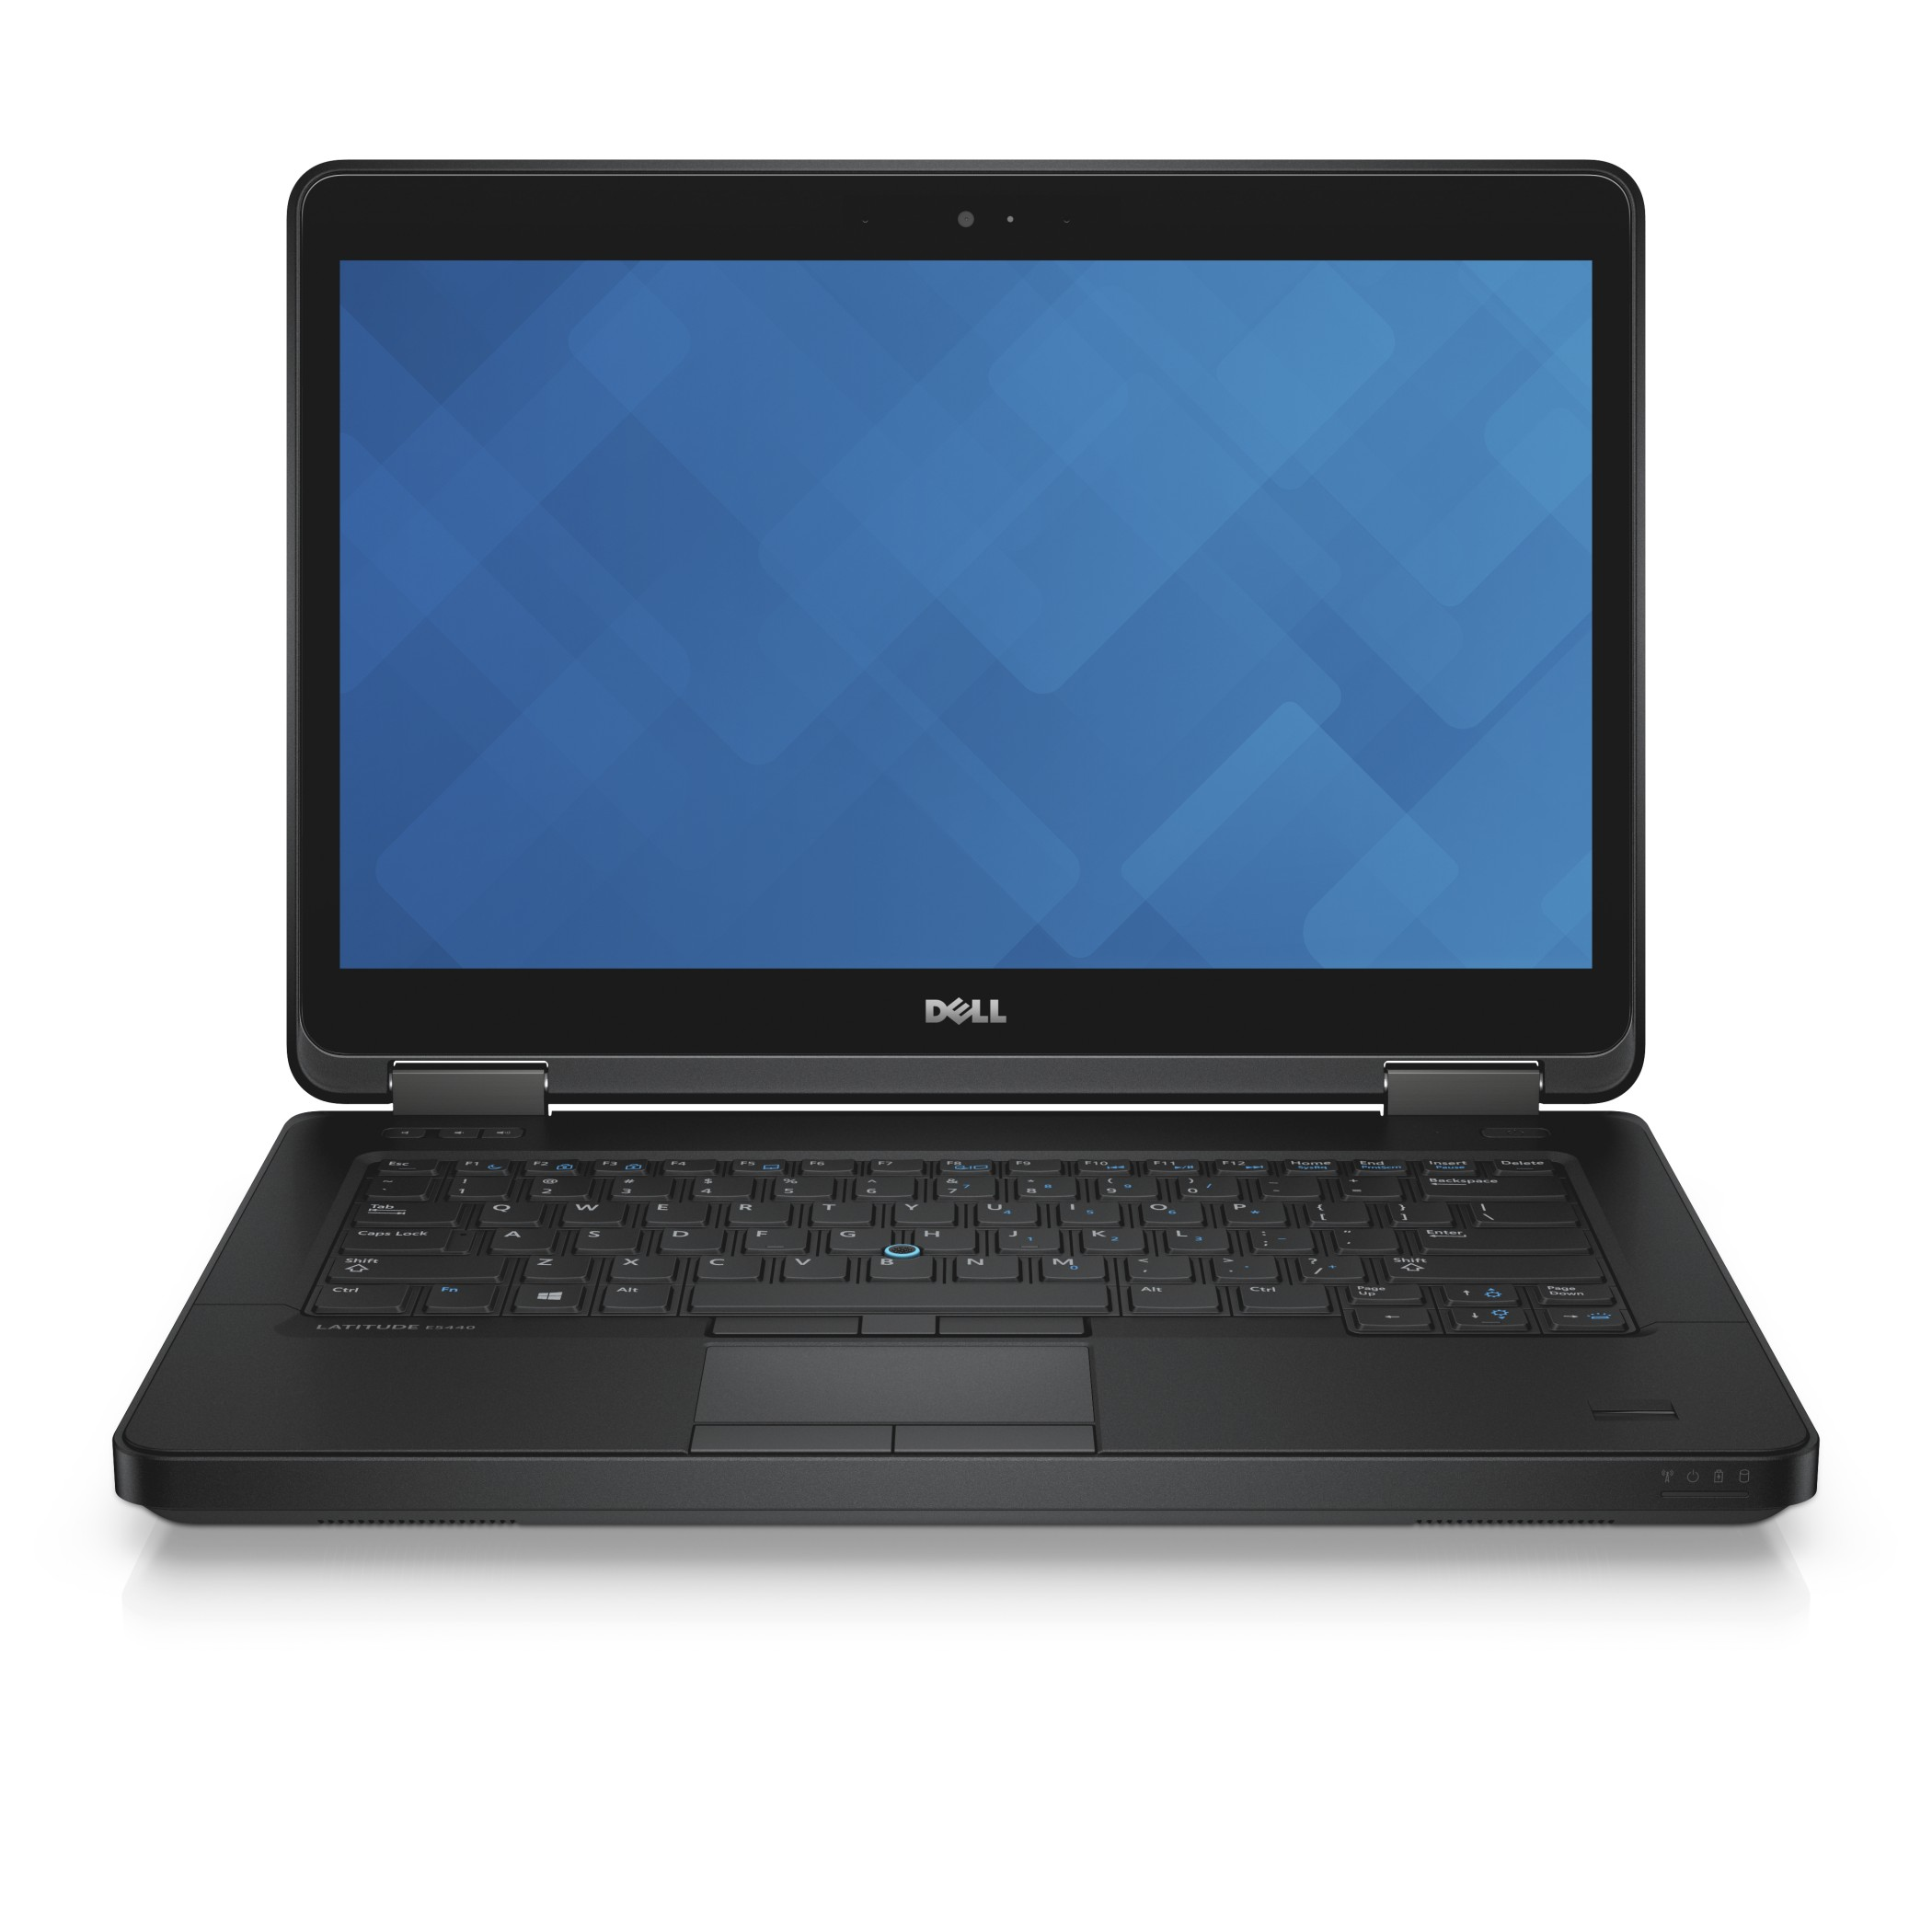 Dell Latitude E5440 Intel Core i5 4th Gen 4GB RAM 500GB HDD